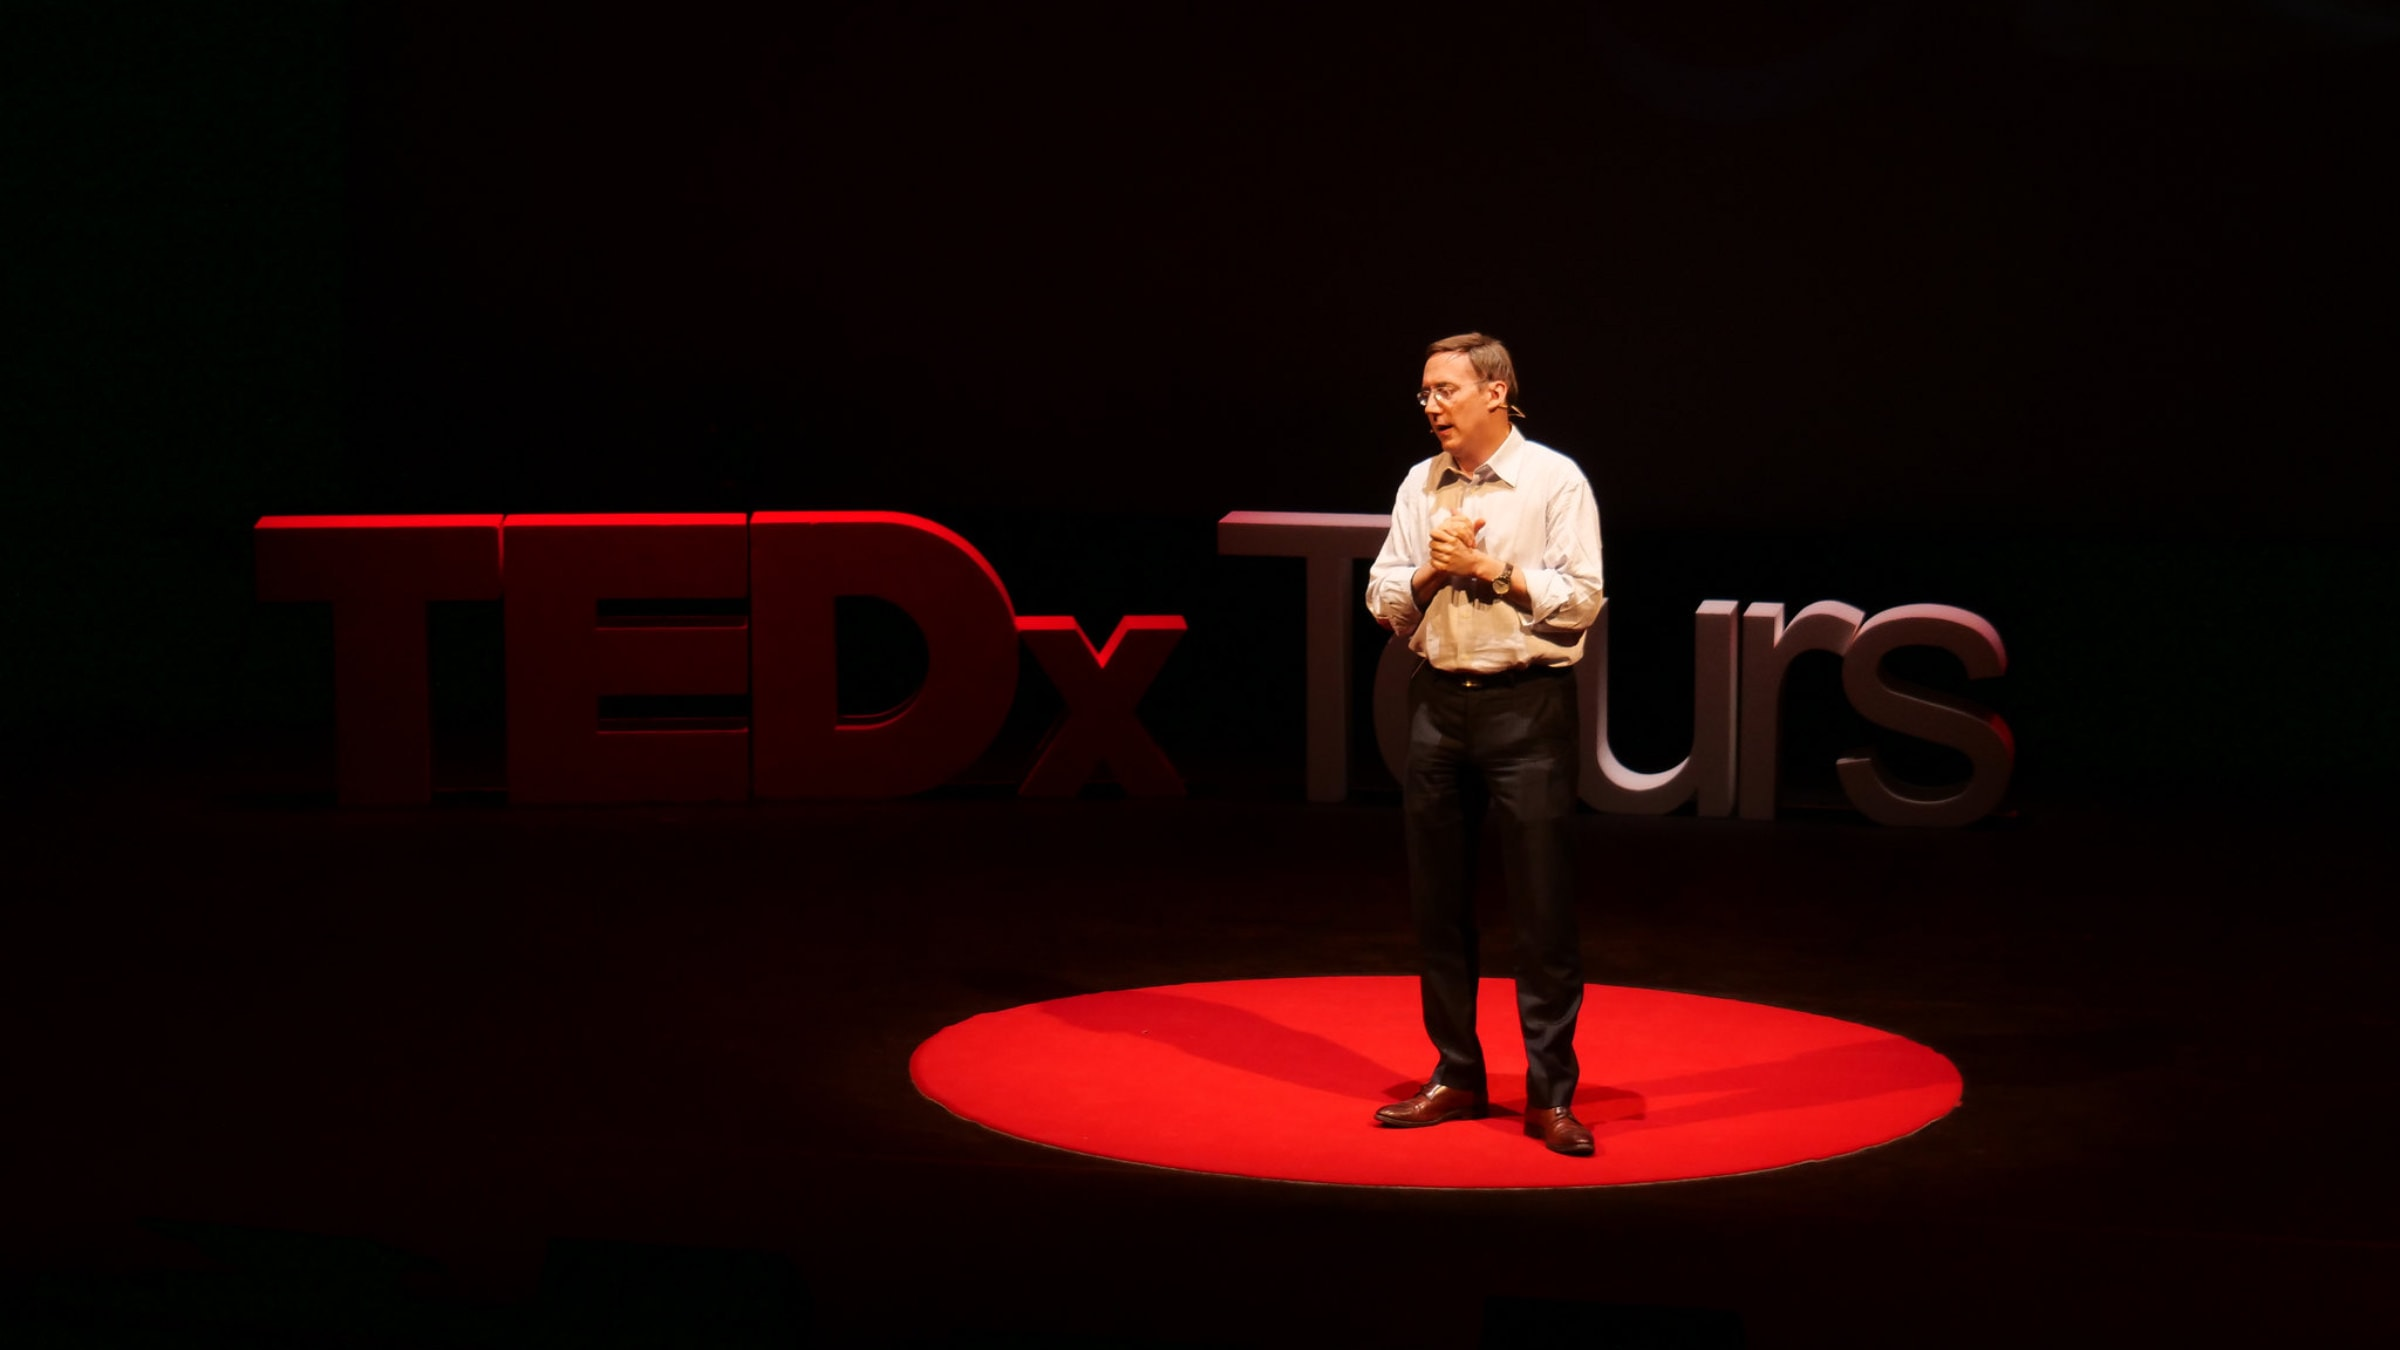 Fabien Boutard, TEDx Tours founder and curator